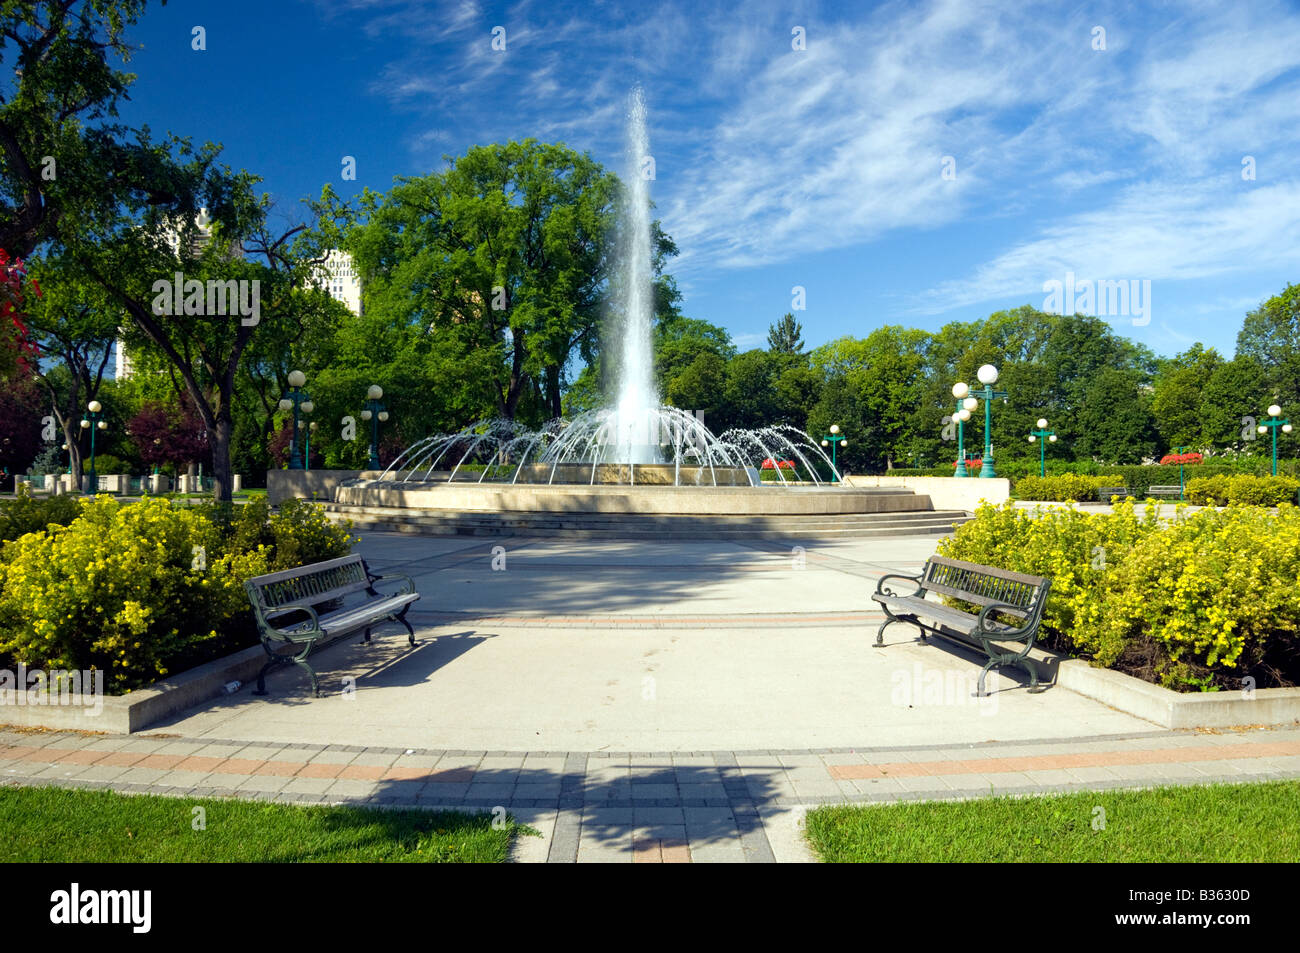 Water fountains canada - Stock Photo The Decorative Water Fountains At The Manitoba Legislative Buildings In Winnipeg Manitoba Canada